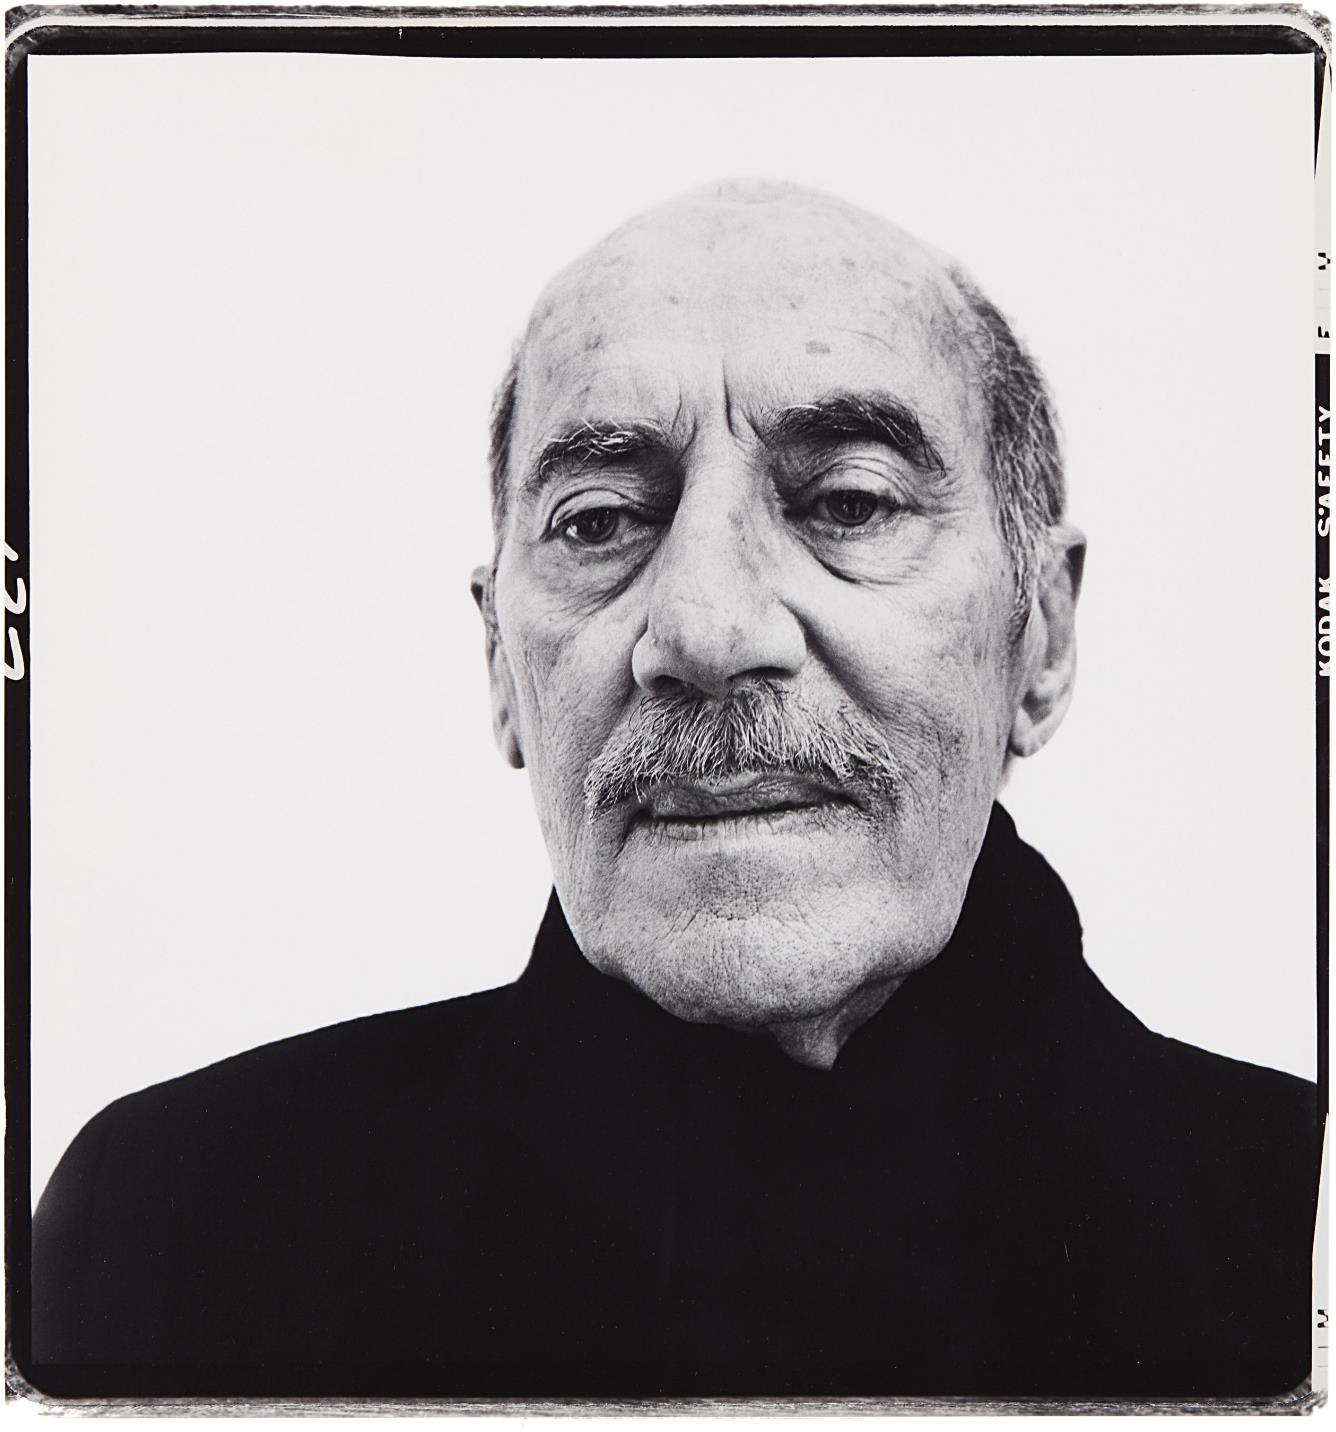 Richard Avedon-Groucho Marx, Actor, Beverly Hills, California, April 12, 1972-1972